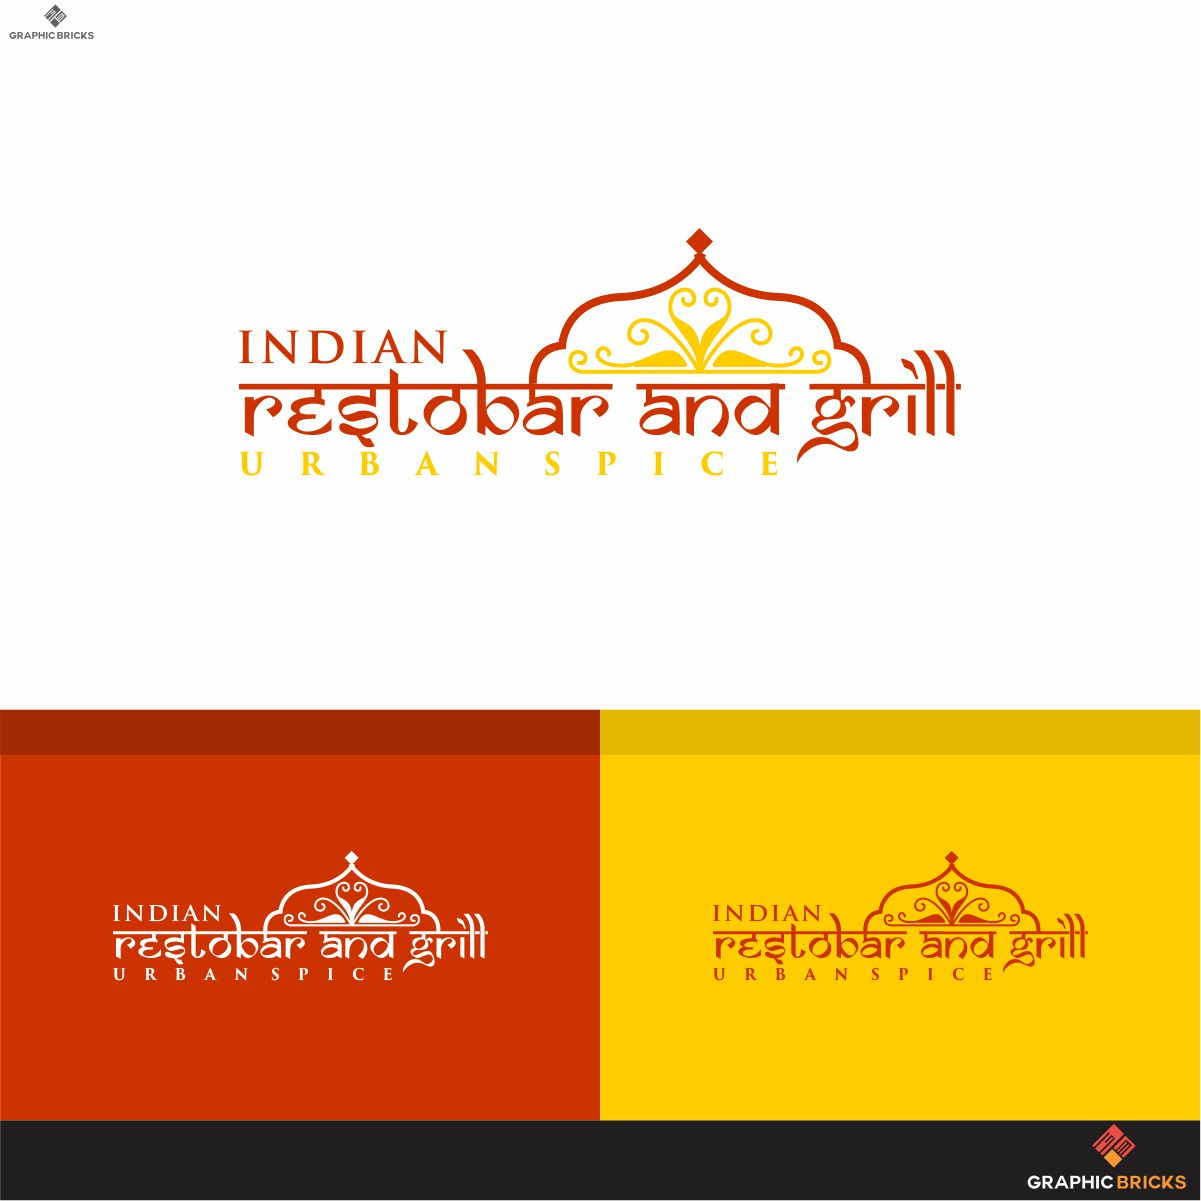 Bold Serious Indian Restaurant Logo Design For Urban Spice Tag Line With Indian Restobar And Grill By Logo No 1 Design 18401540